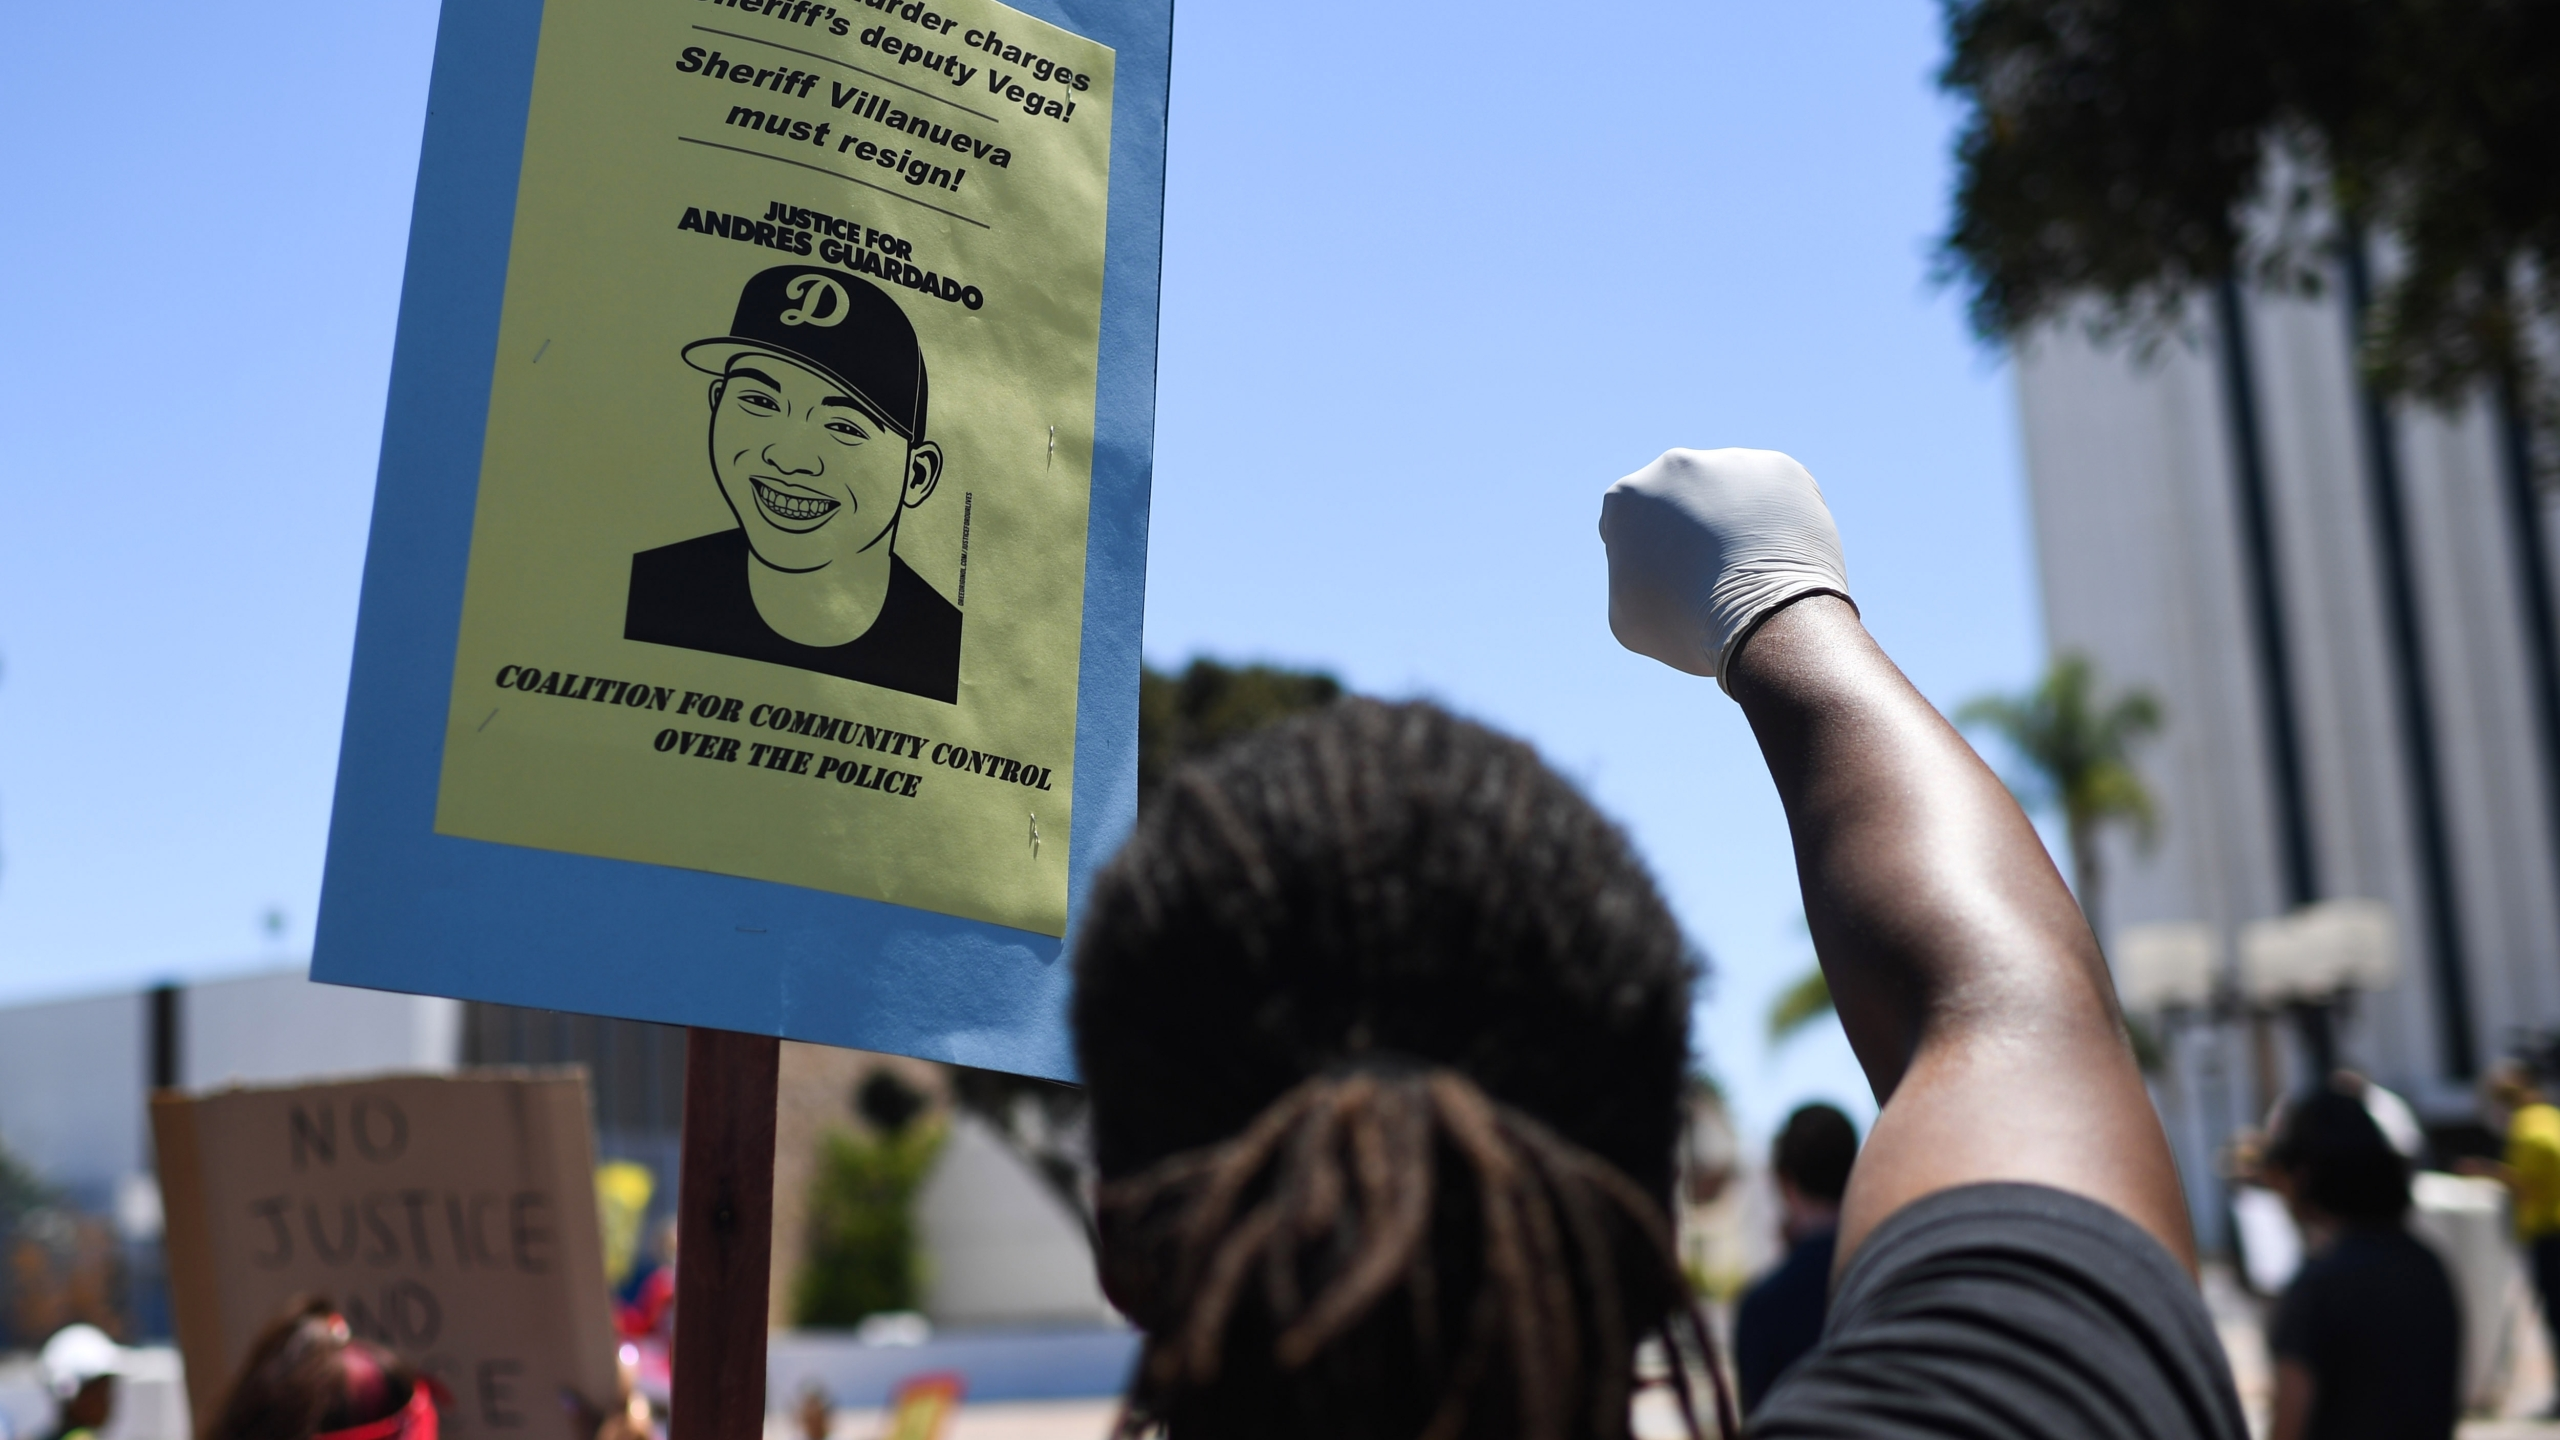 A person holds up a placard and a gloved fist during a protest in the Compton area calling for Los Angeles Sheriff's deputies to be held accountable for the shooting death of 18-year-old security guard Andres Guardado, on July 11, 2020. (ROBYN BECK/AFP via Getty Images)